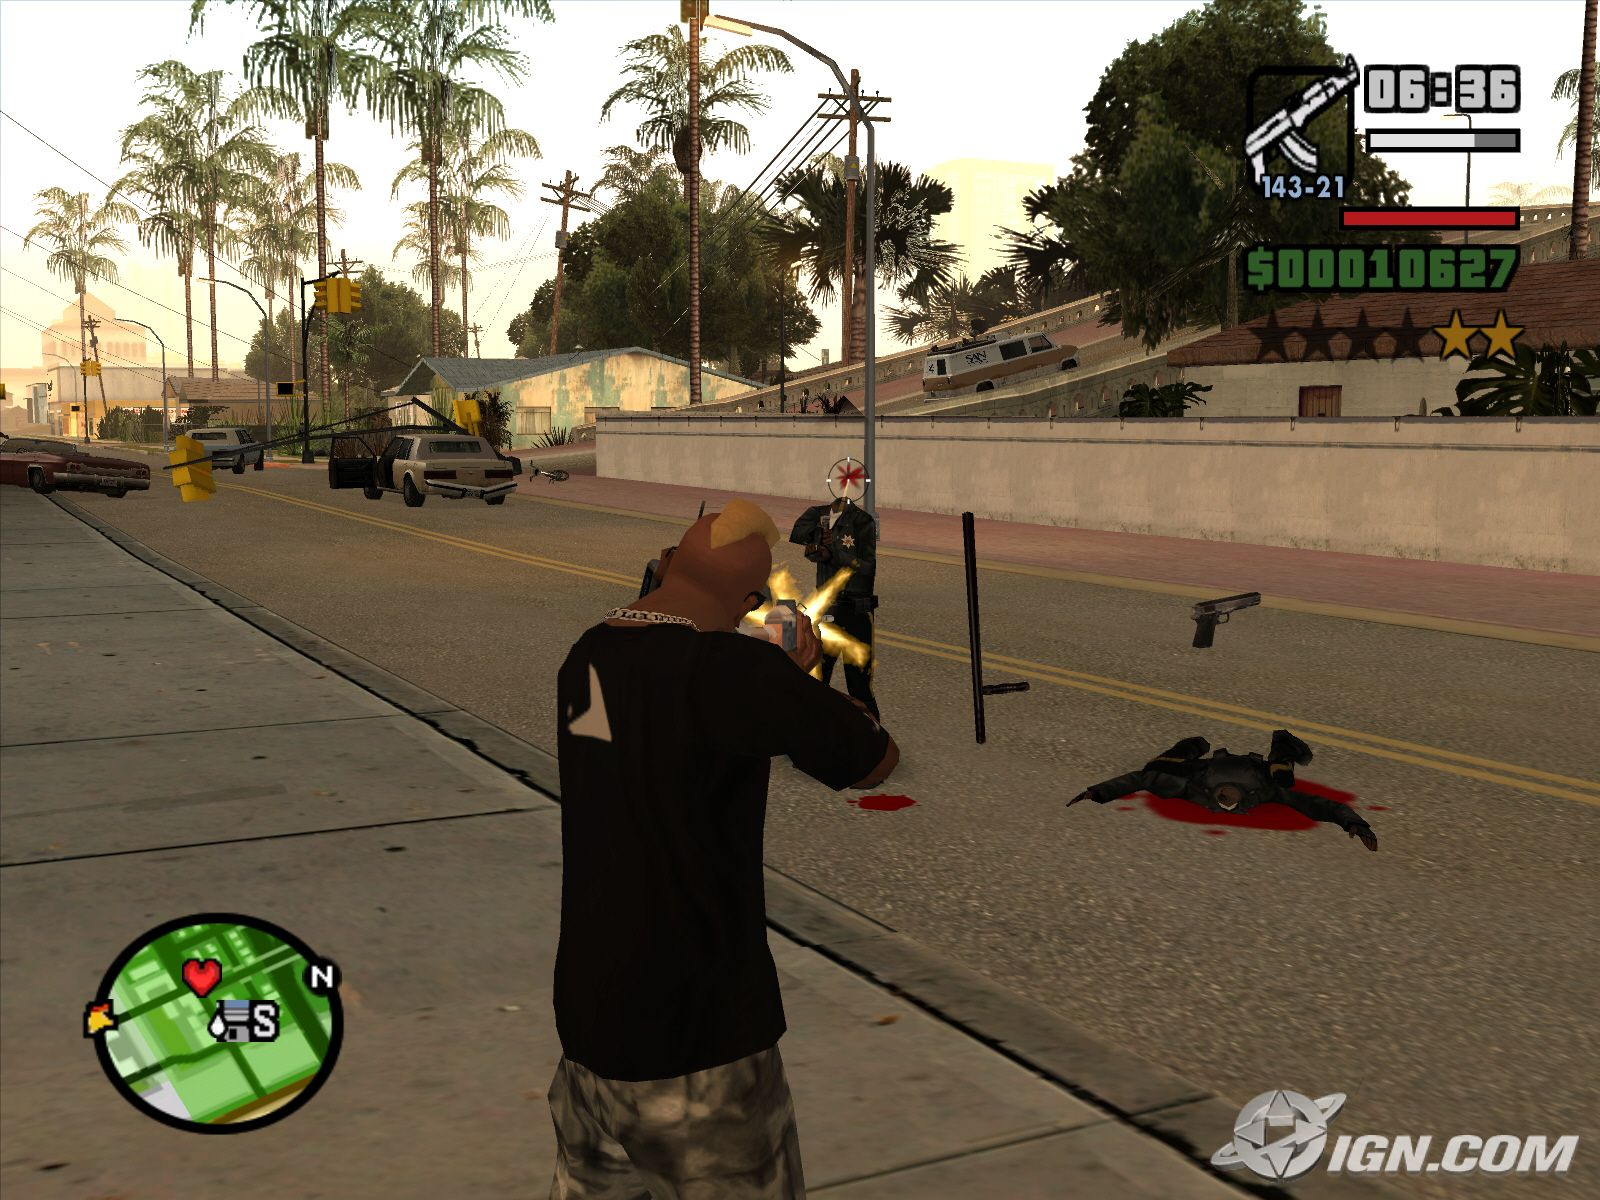 Gta san andreas capturas 5b3 5d